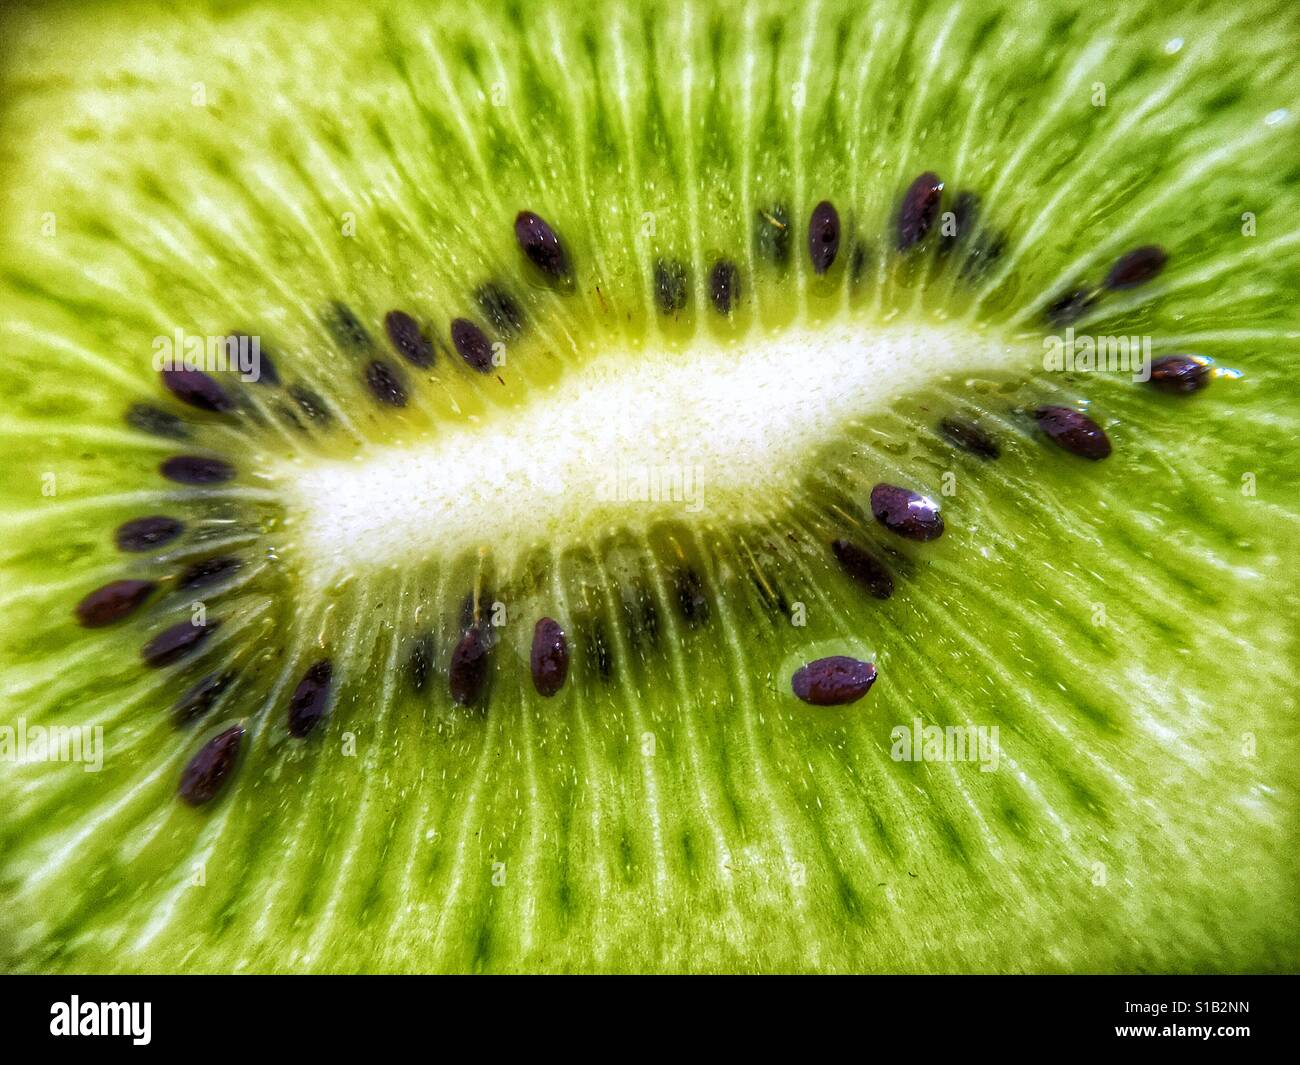 Close up macro photograph of the green centre of a fresh kiwi fruit. Stock Foto